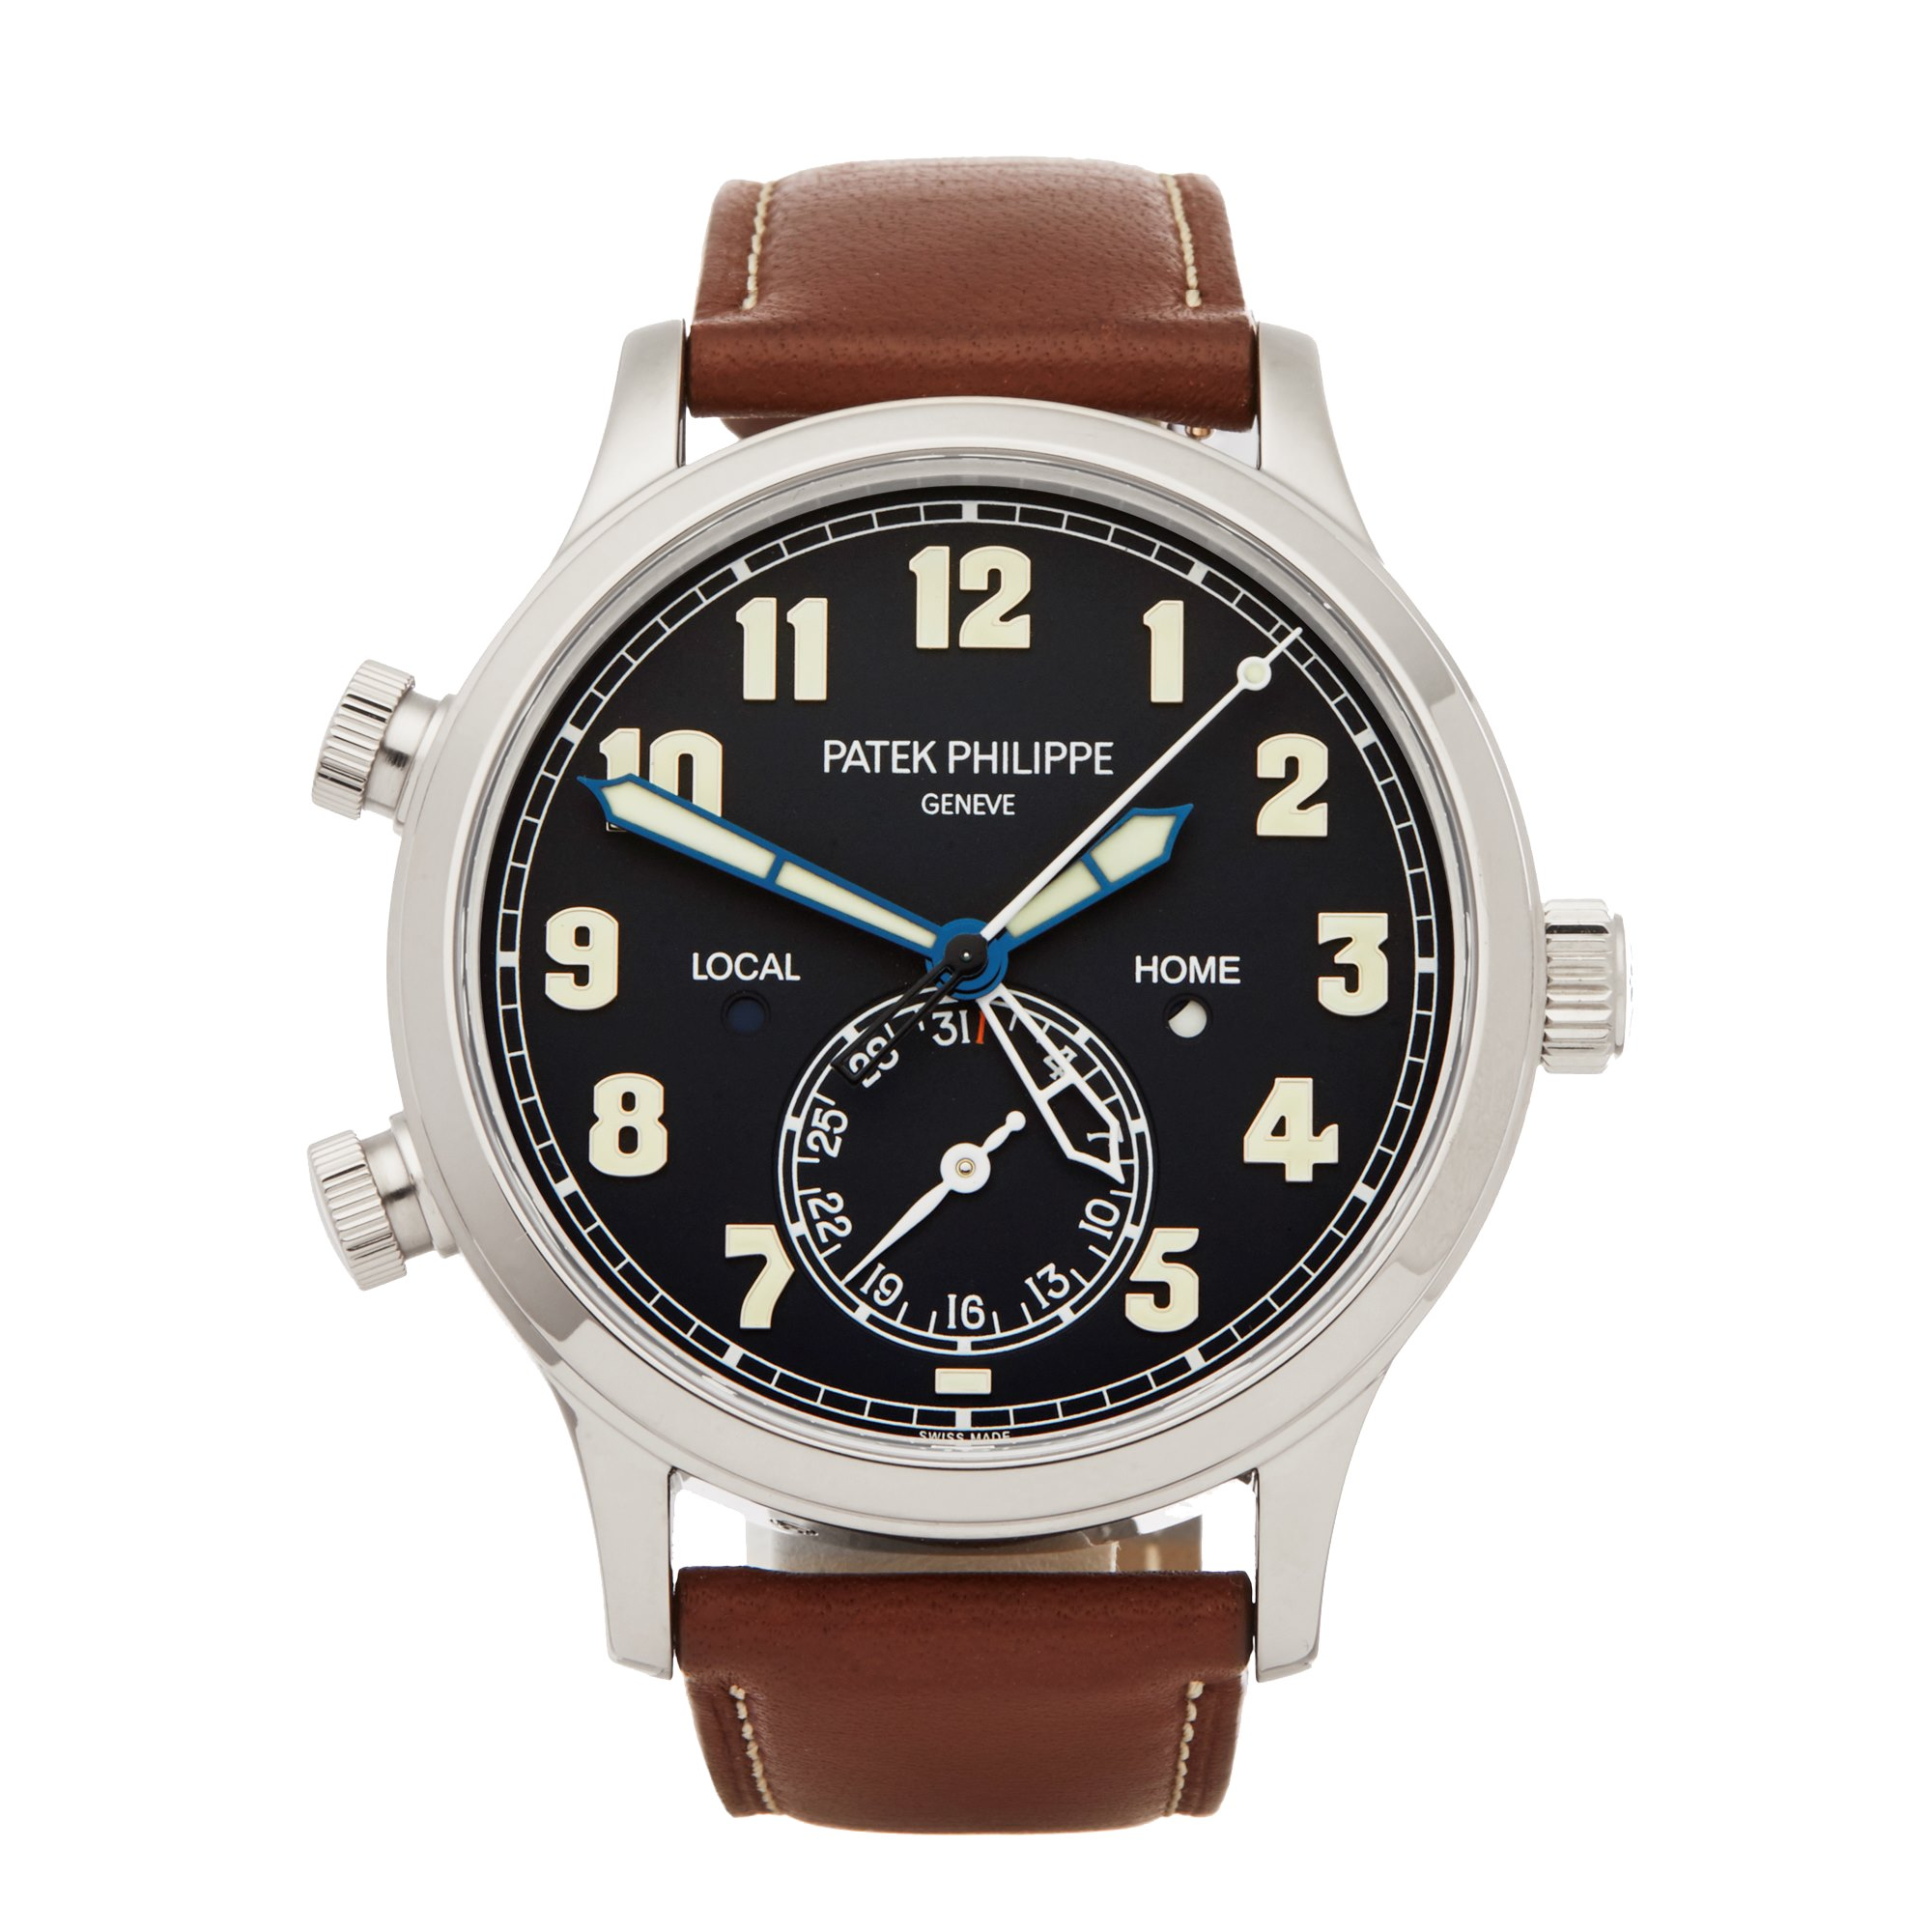 Patek Philippe Calatrava Pilot Travel Time 18K White Gold 5524G-001